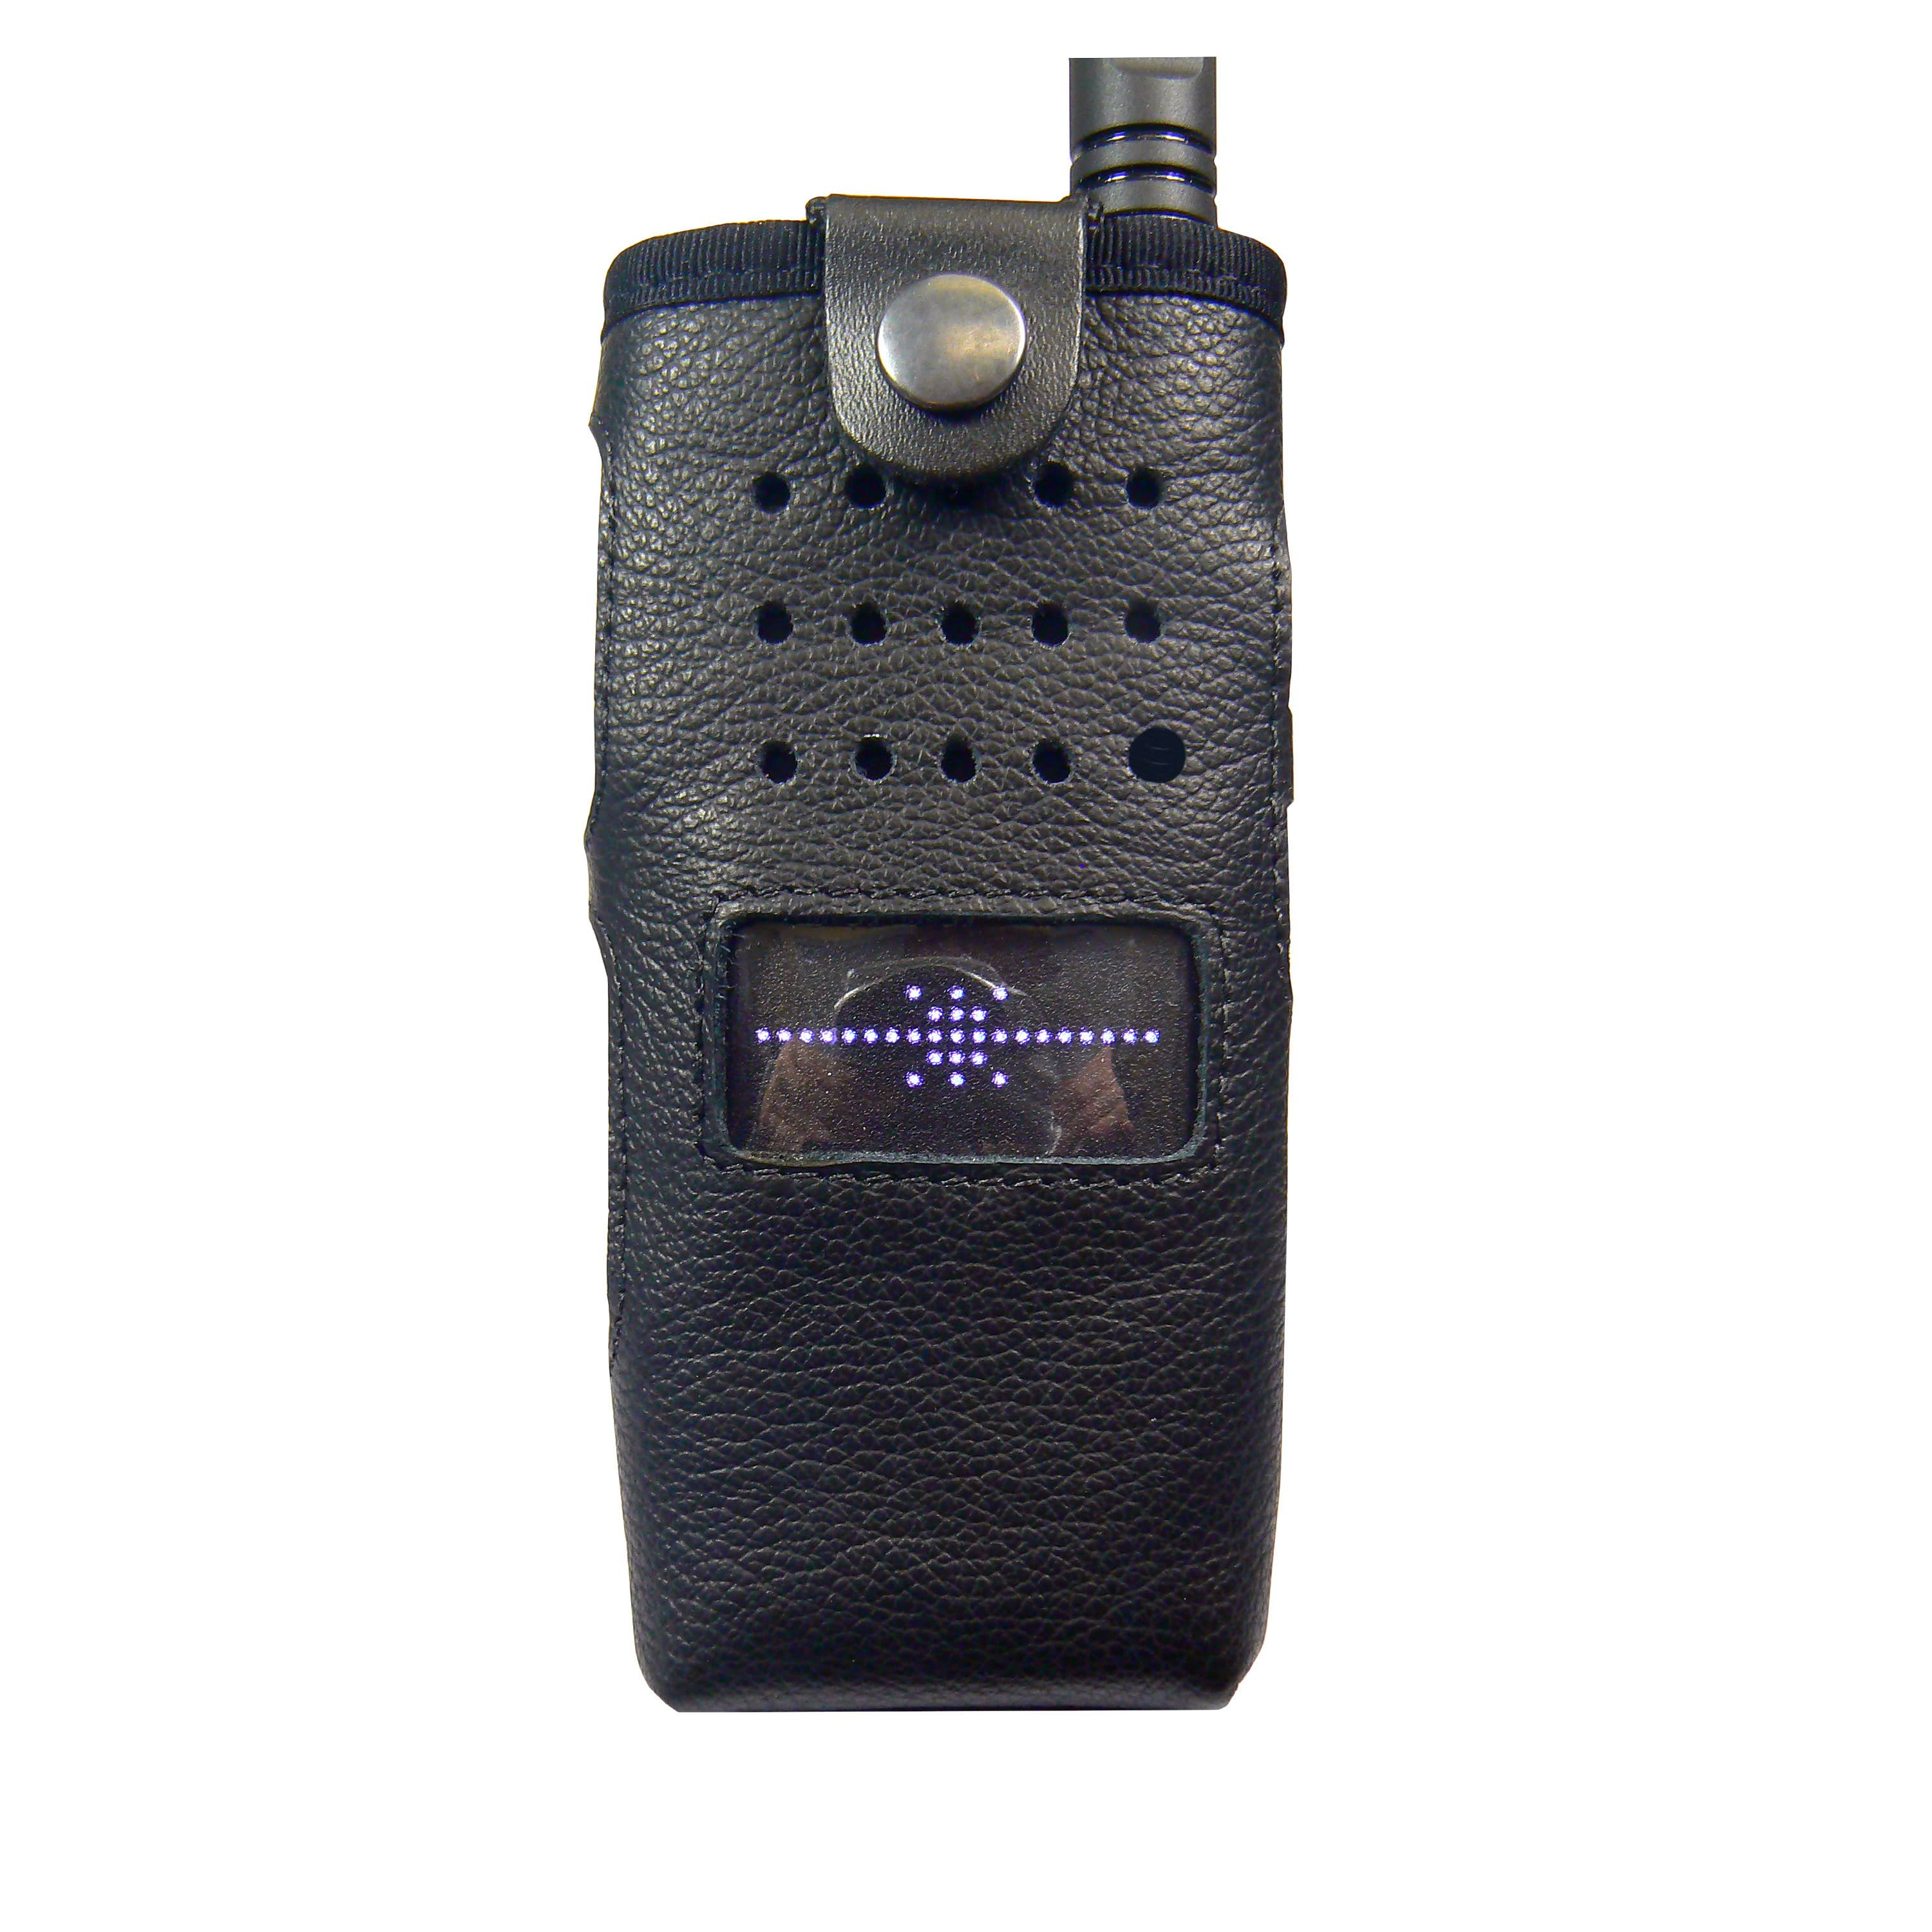 Motorola SL1600 Radio Case leather